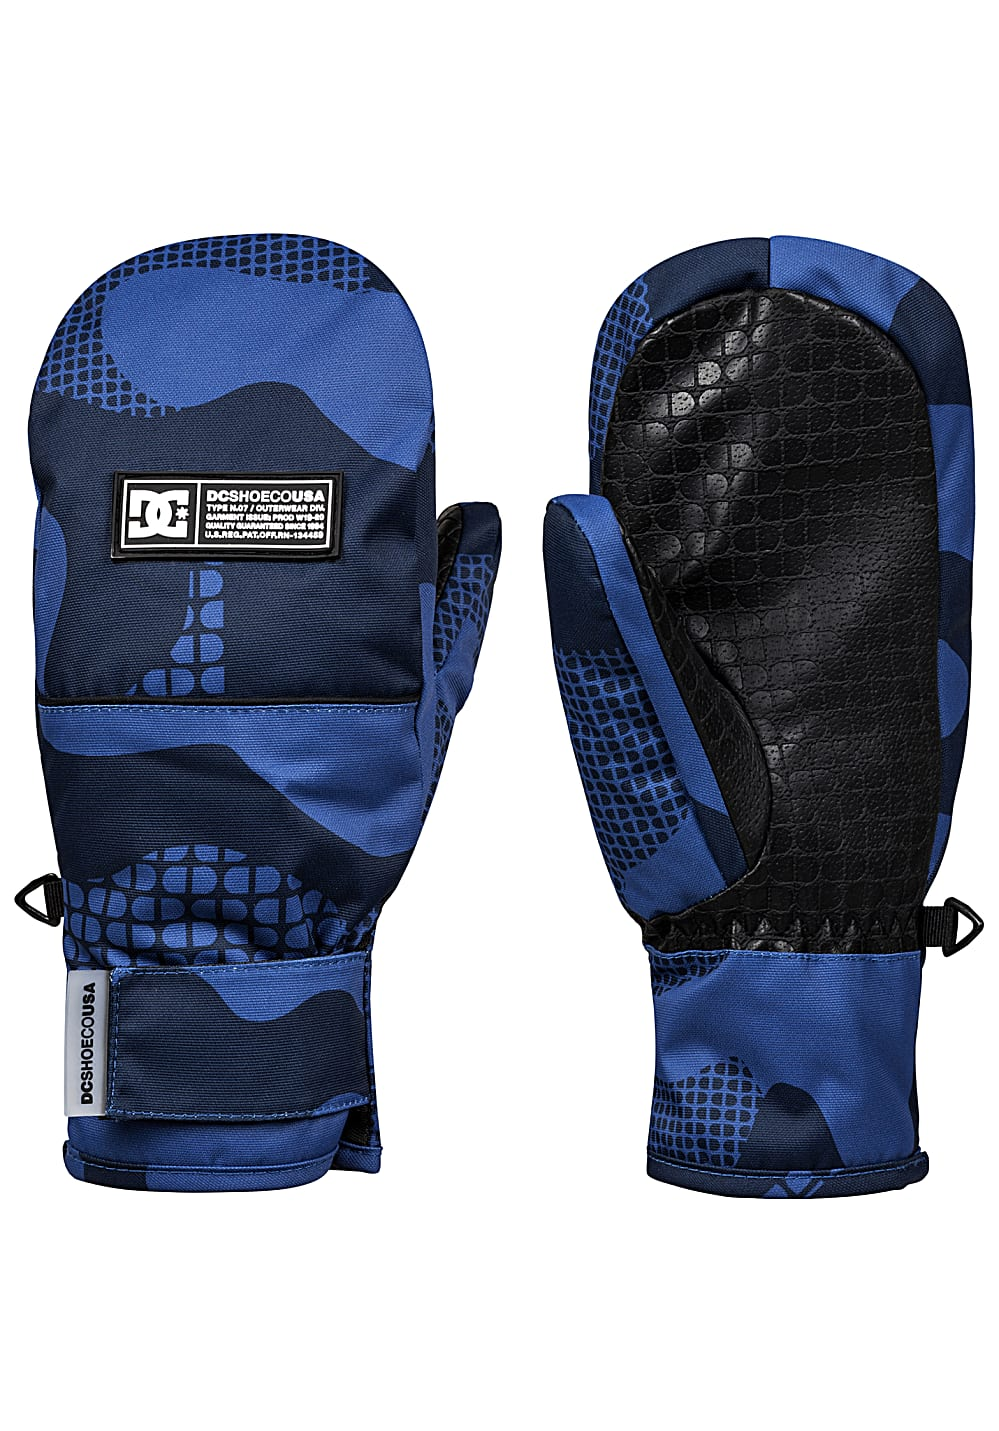 Boysaccessoires - DC Franchise Mitt Snowboard Handschuhe Blau - Onlineshop Planet Sports